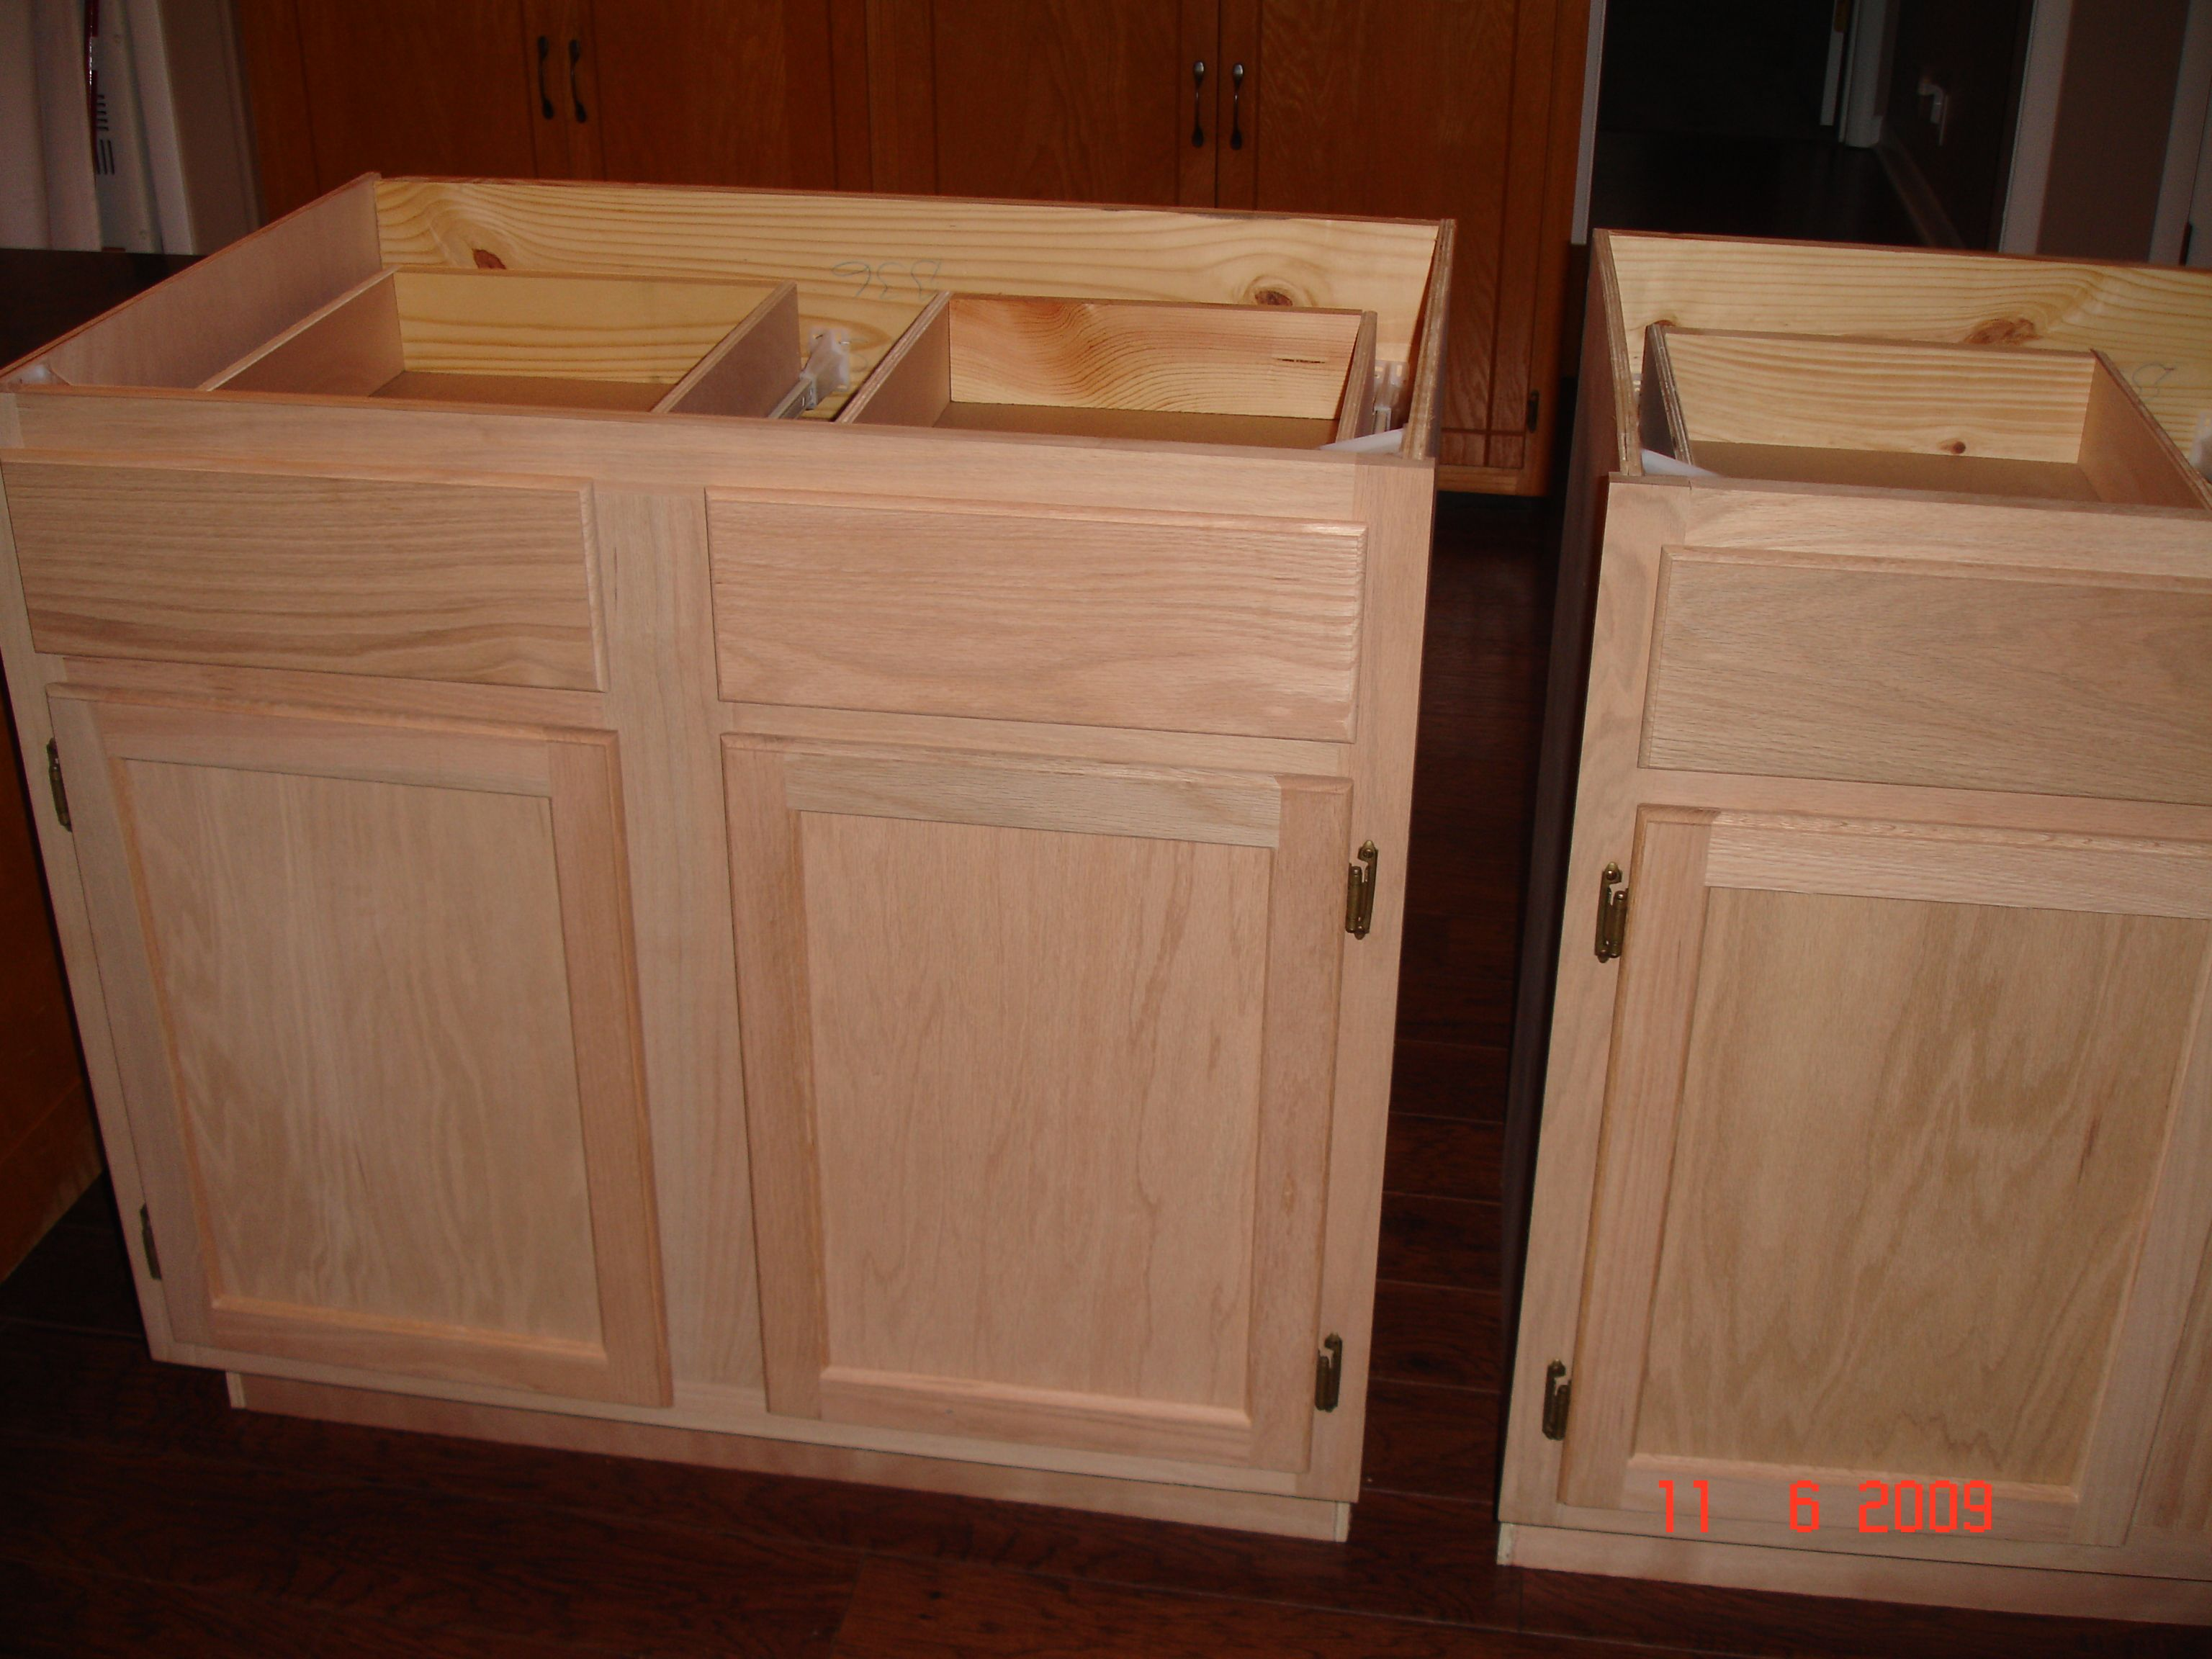 DIY Kitchen Island Made By Hubby U0026 Me From Unfinished Kitchen Cabinets,  Beadboard, Stain